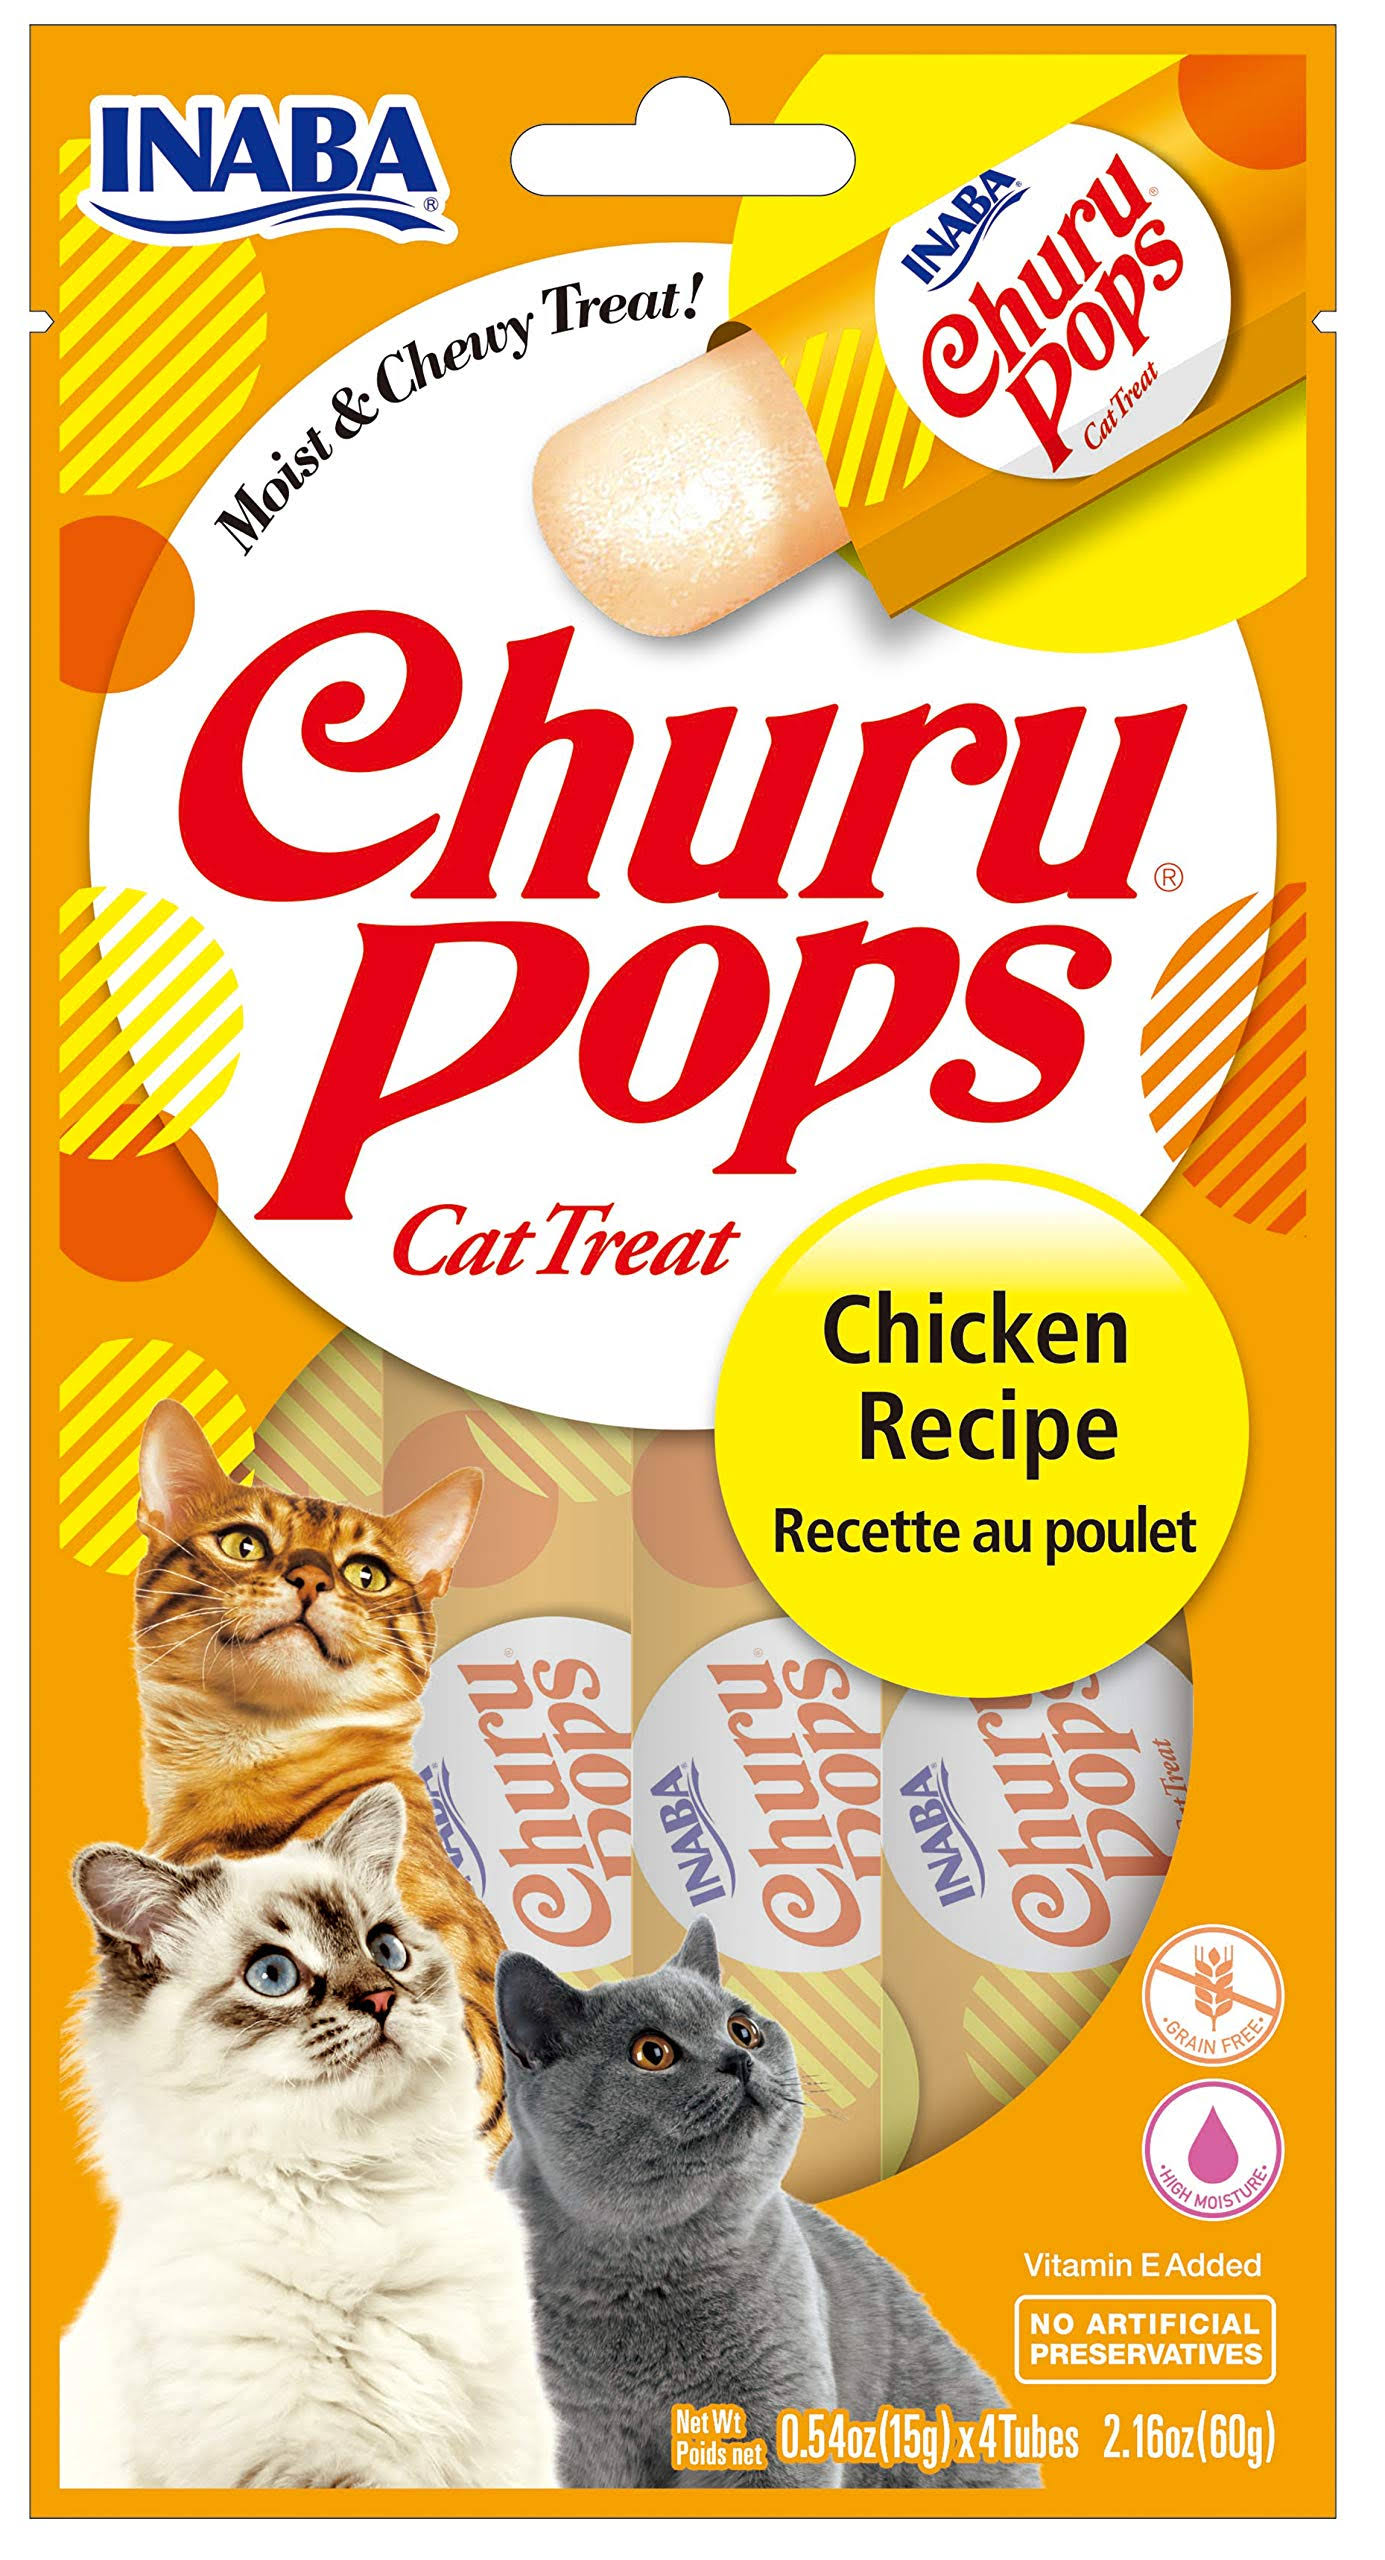 Inaba Churu Churu Pops Cat Treat - Chicken Recipe, 4 Tubes, 60g